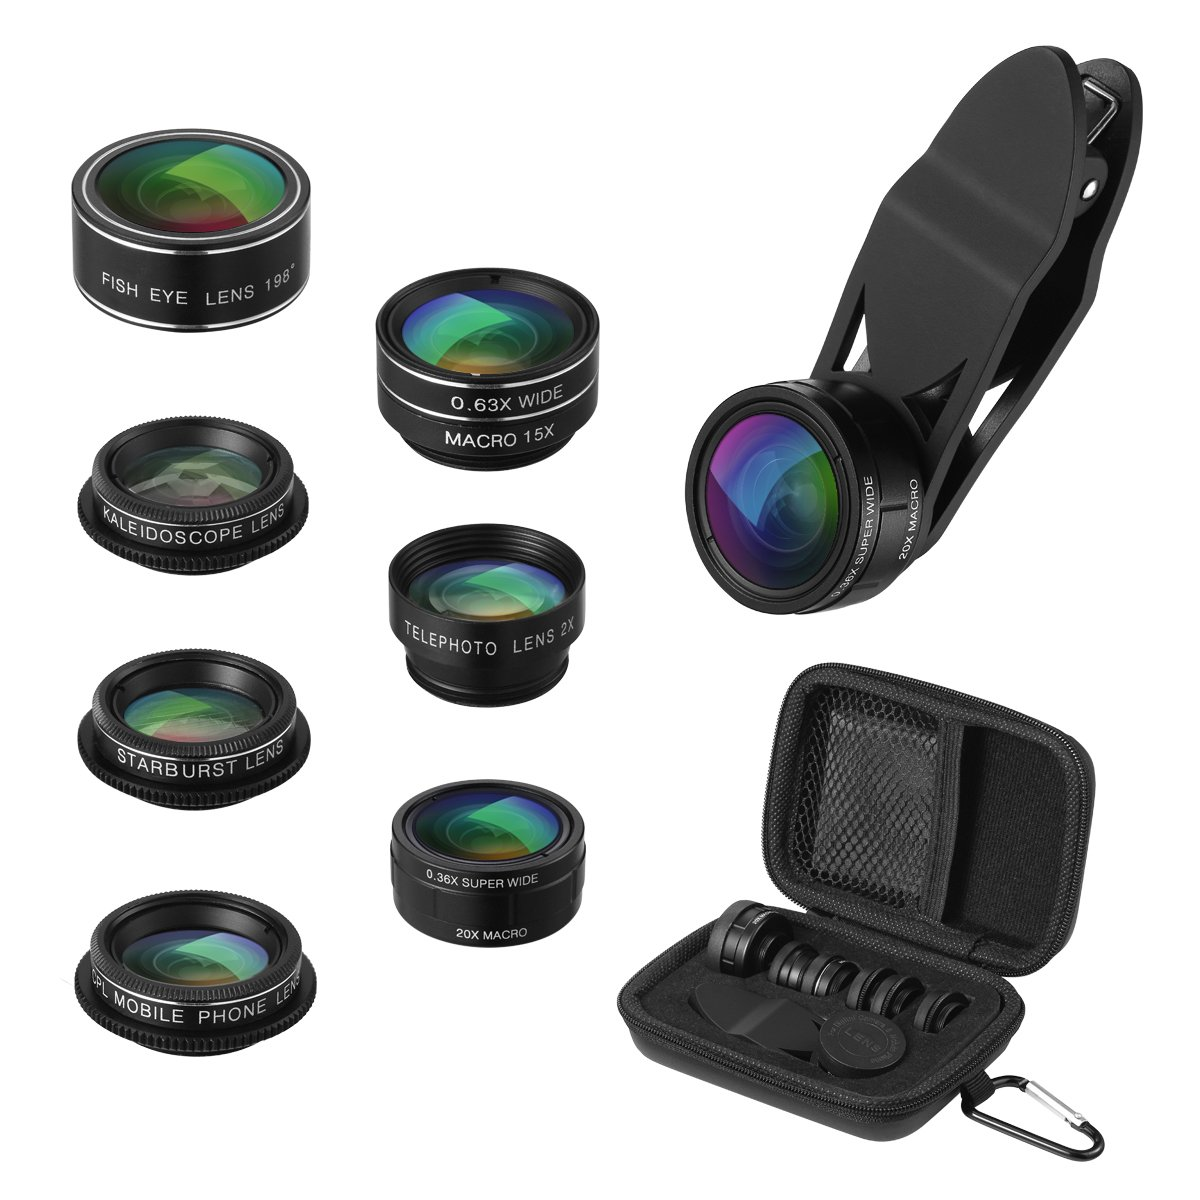 Criacr Phone Camera Lens, 9 in 1 Zoom Lens Kit, 0.36X Super Wide Angle Lens + 0.63X Wide Lens + 15X Macro Lens + 20X Macro Lens + 198°Fisheye Lens + CPL + Starburst Lens Telephoto Lens for Smartphones by AMIR